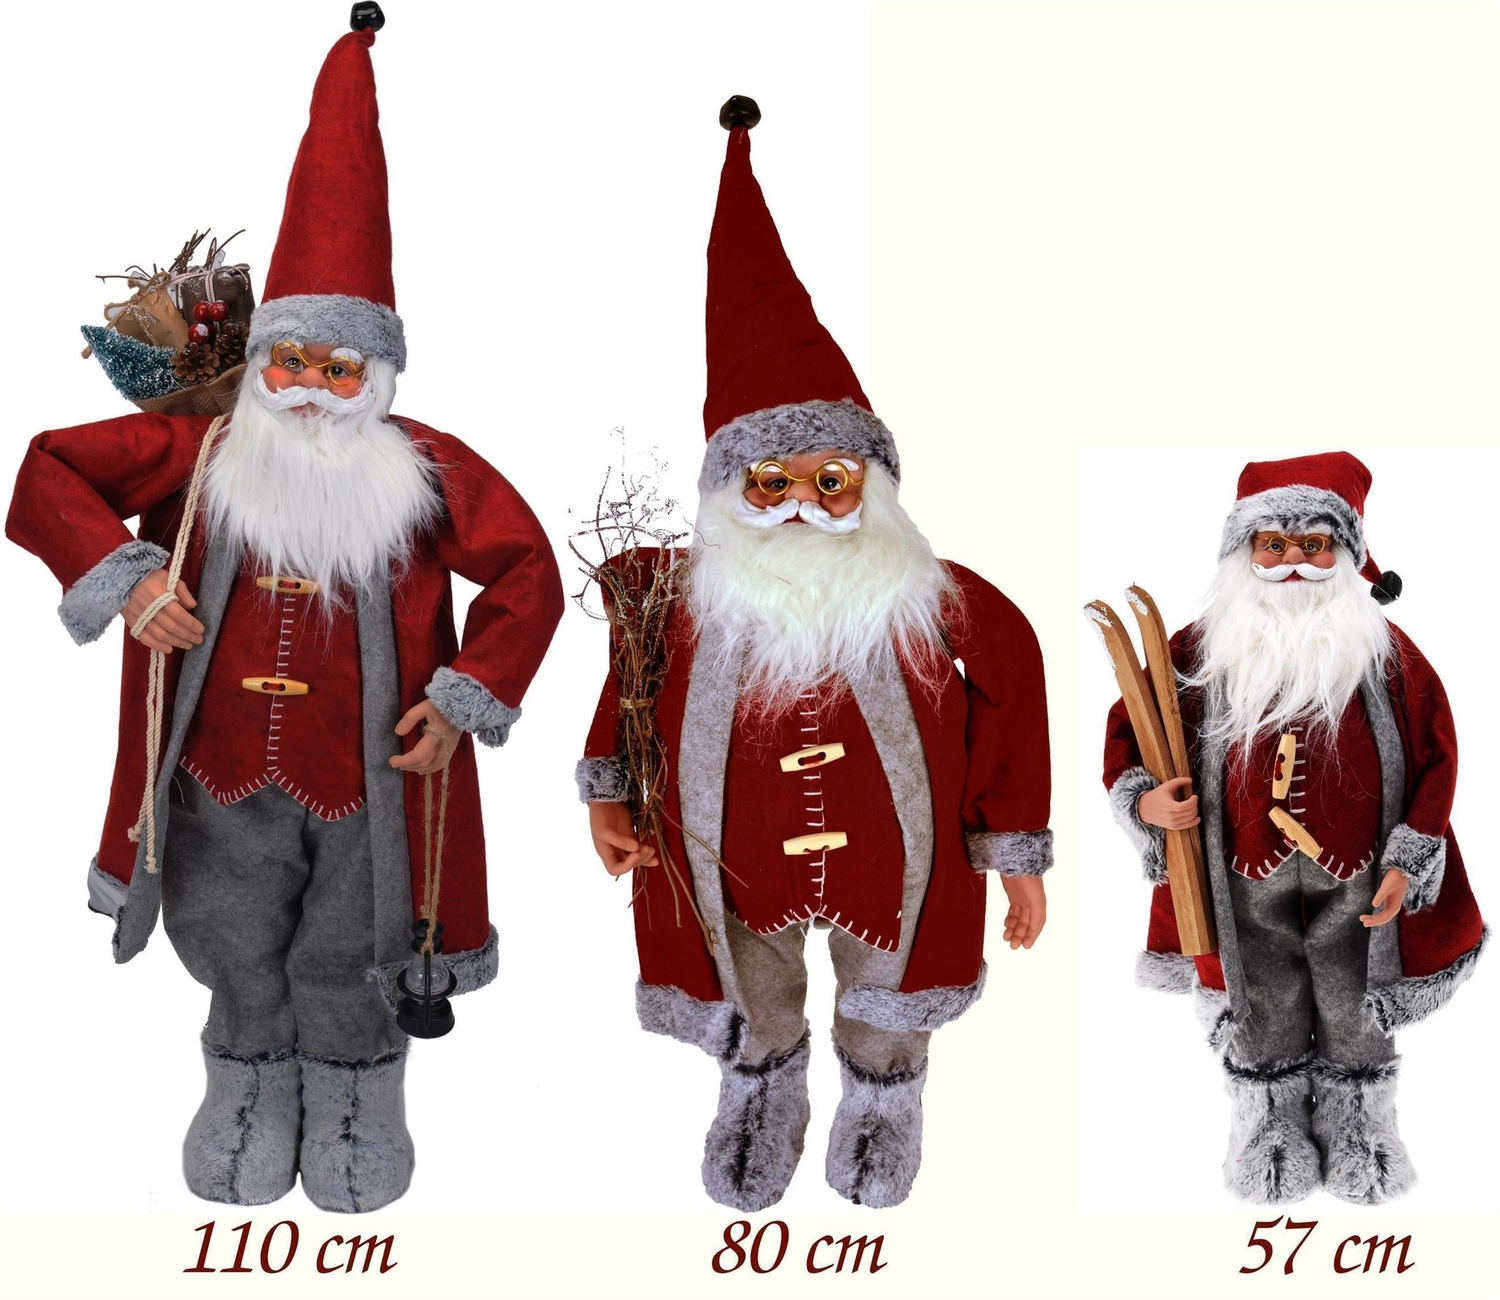 weihnachtsmann figur rot grau nikolaus xxl dekofigur. Black Bedroom Furniture Sets. Home Design Ideas